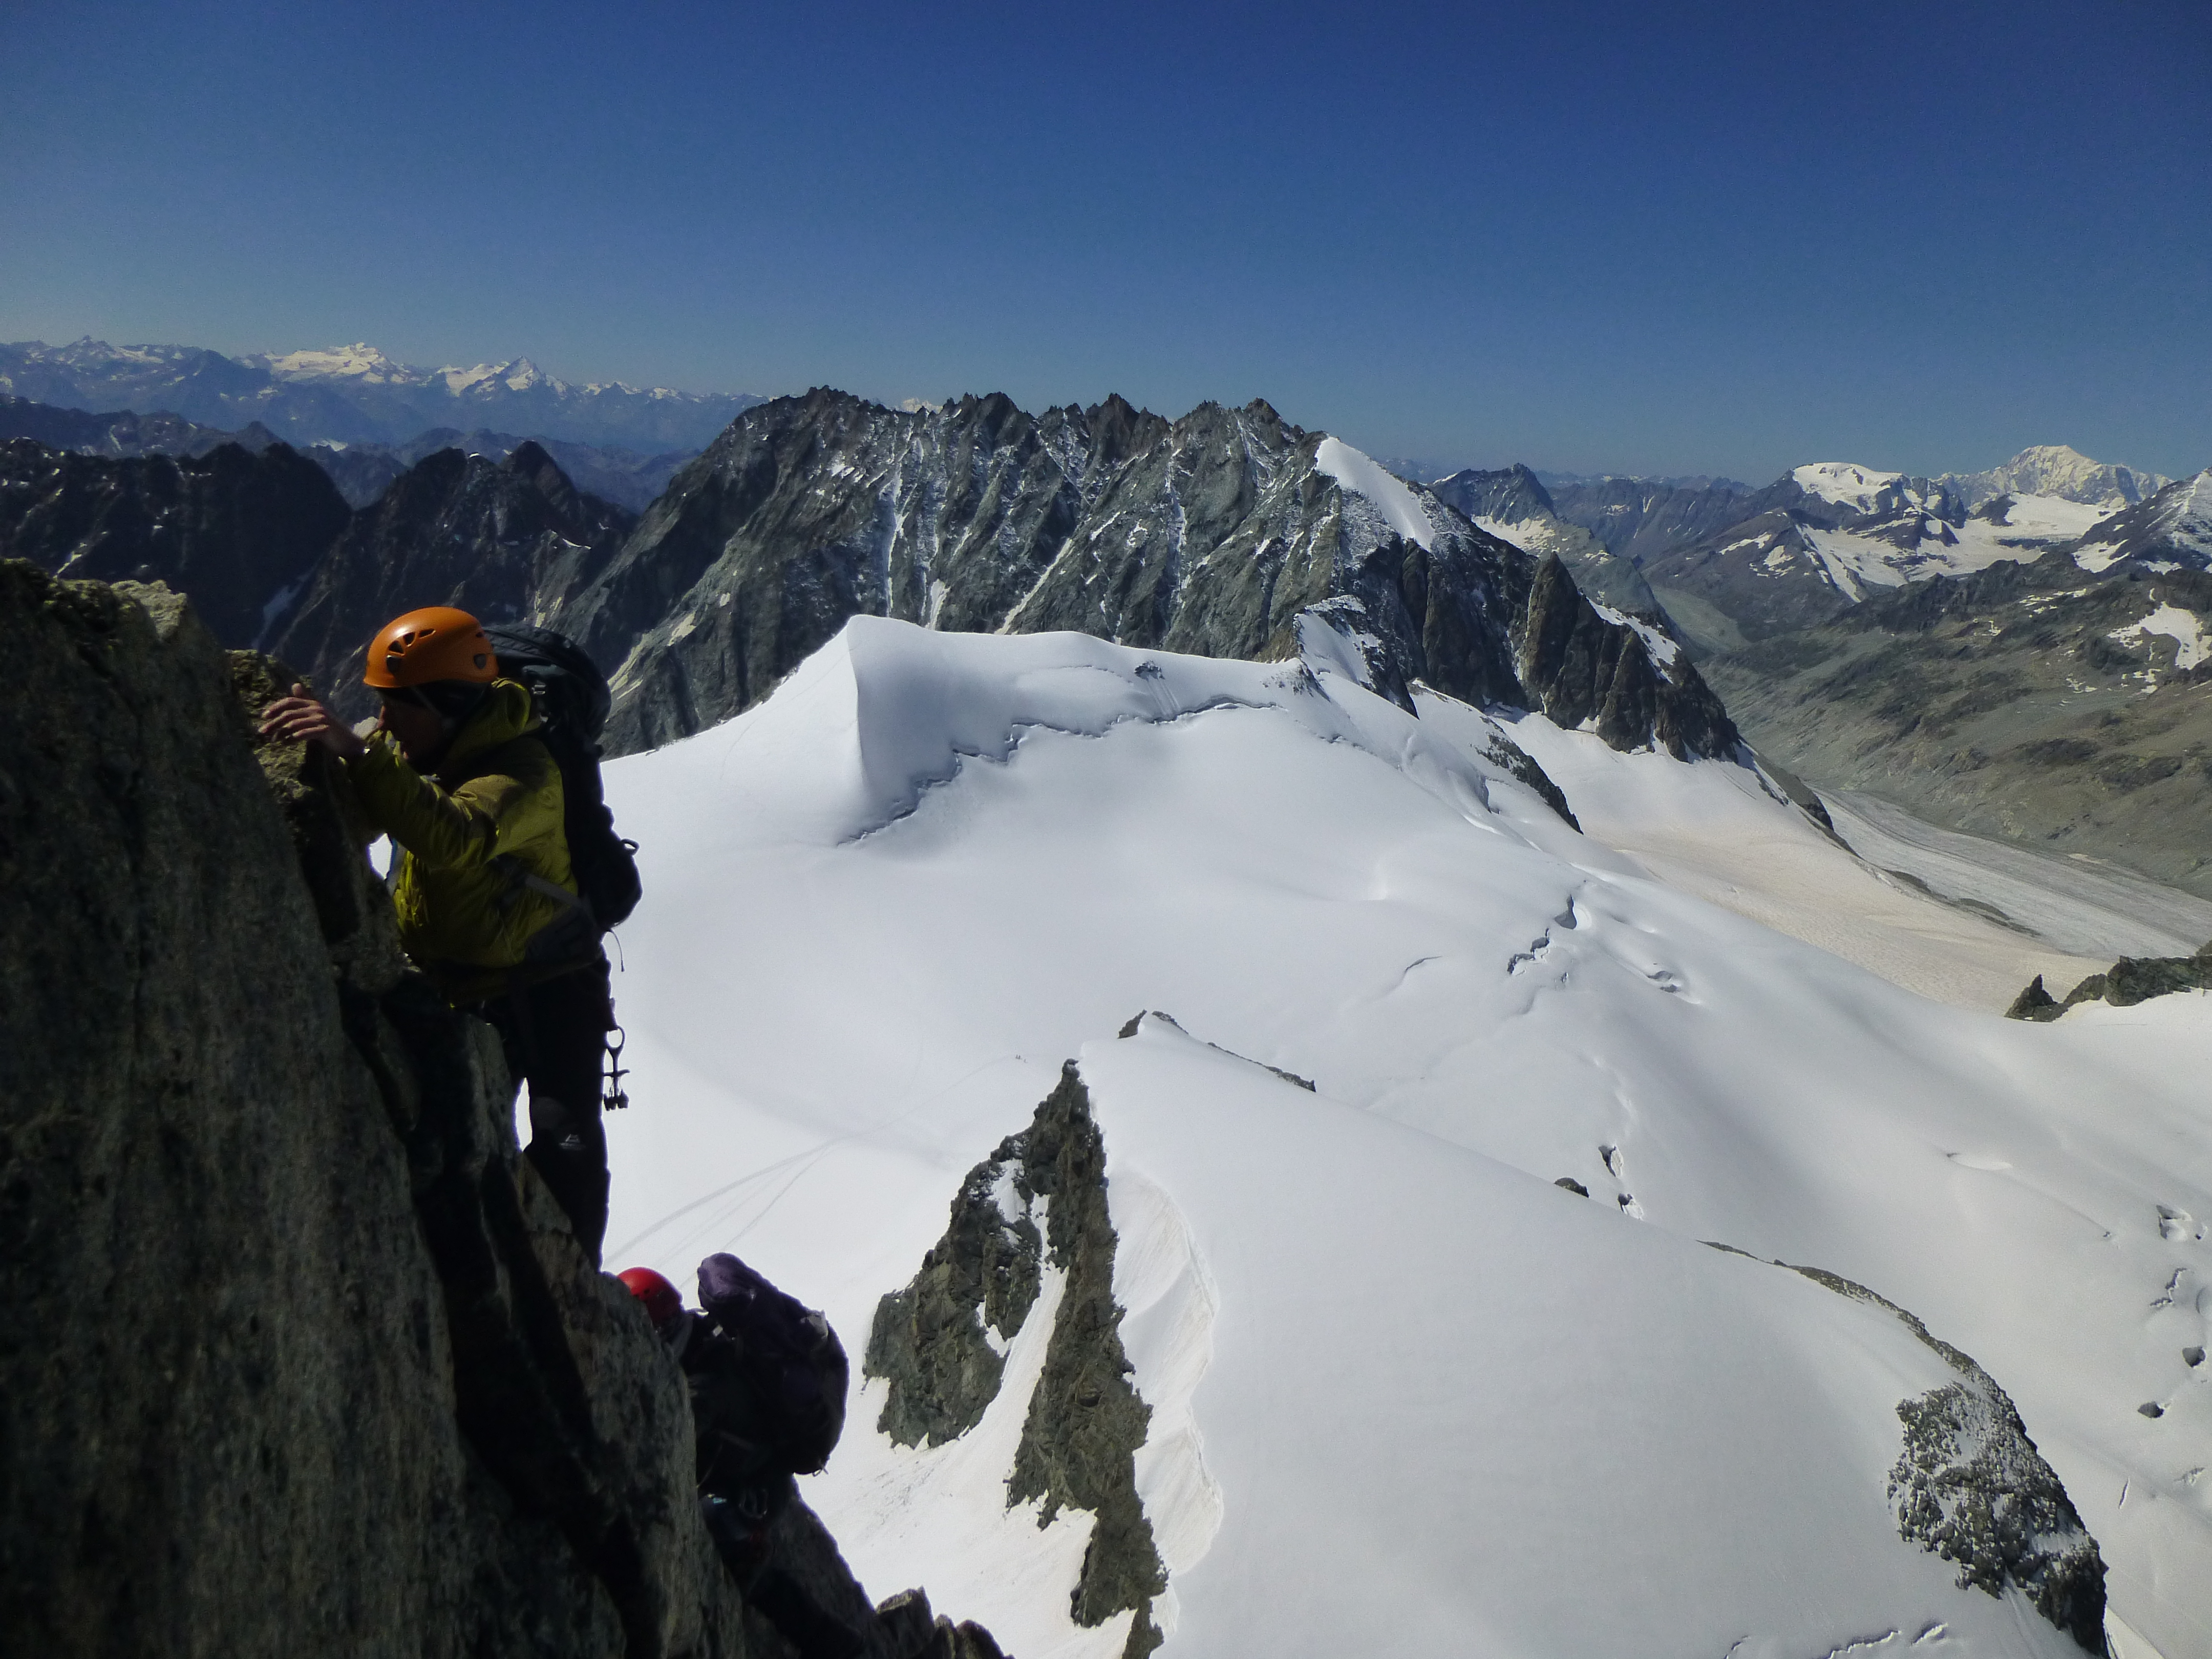 climbing l'Eveque with the ridge of La Singla behind and Mont Blanc far away to the right